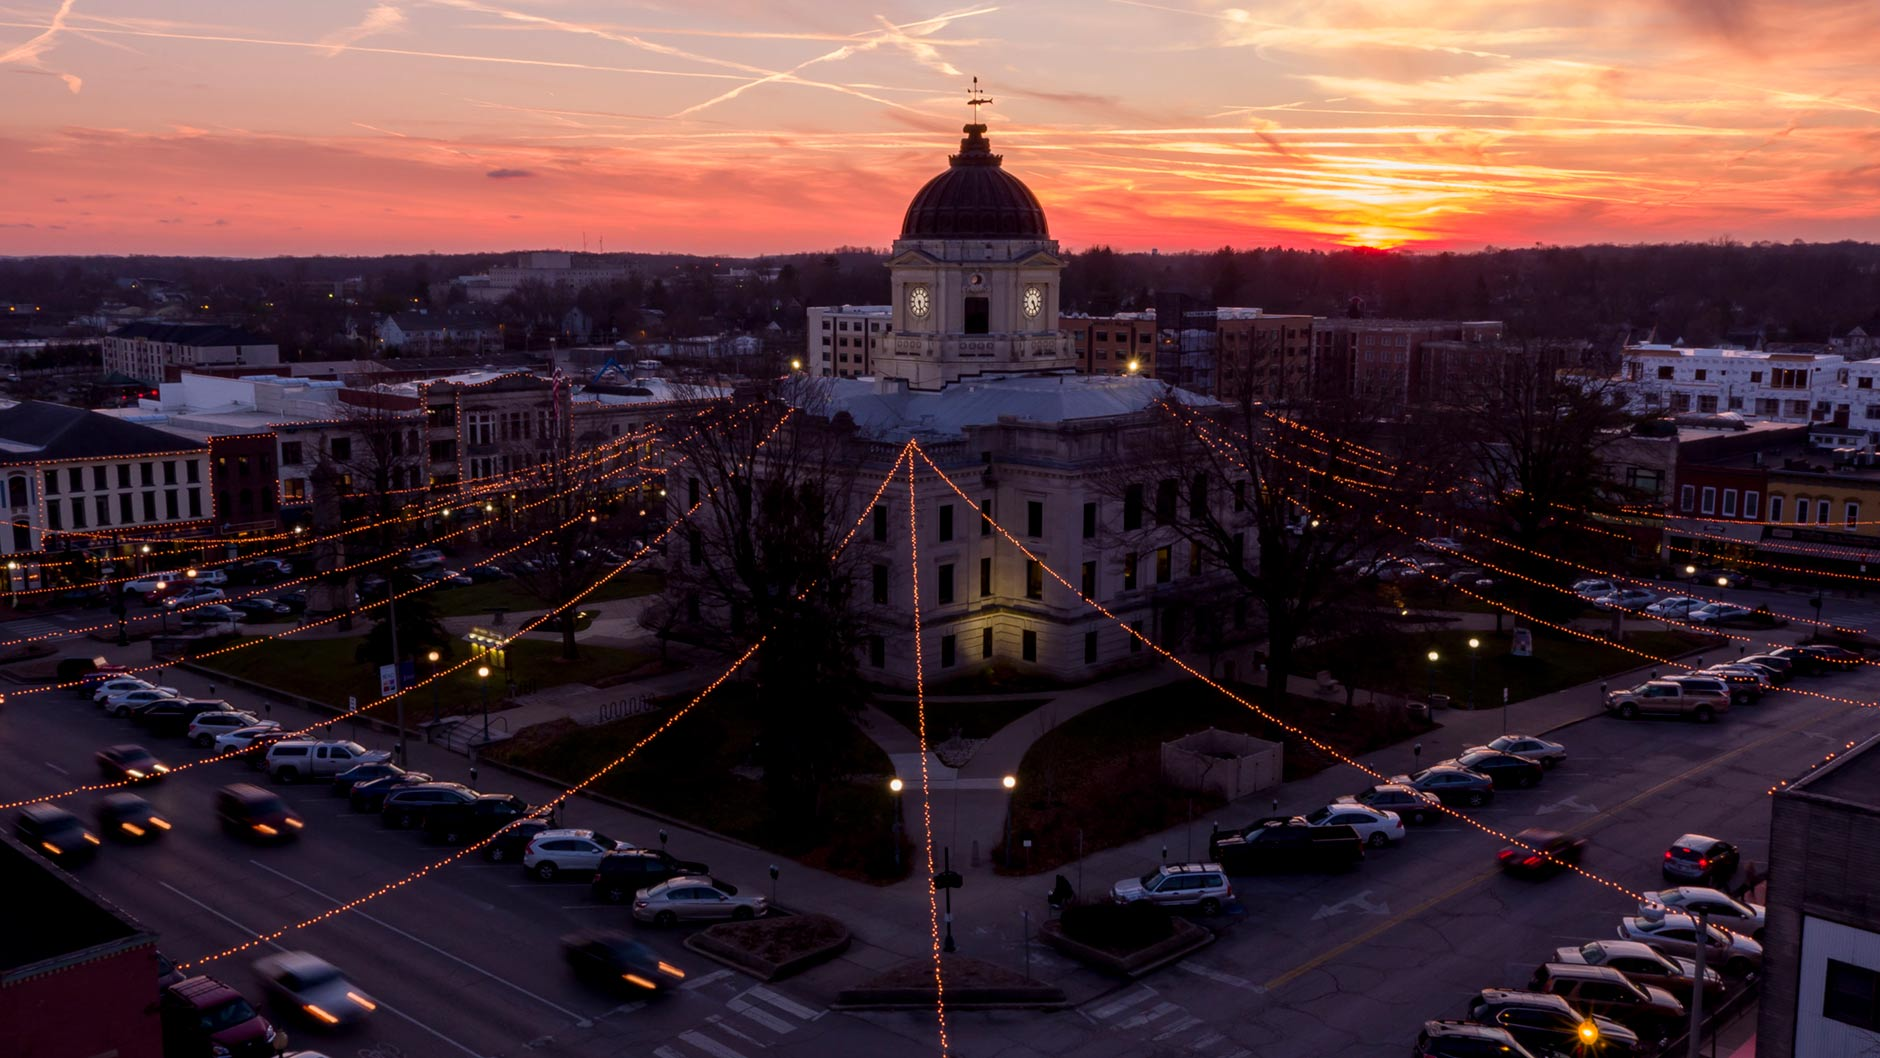 Holiday lights illuminate the courthouse square in downtown Bloomington on the day of the winter solstice on Thursday, Dec. 21, 2017. (James Brosher/Indiana University)